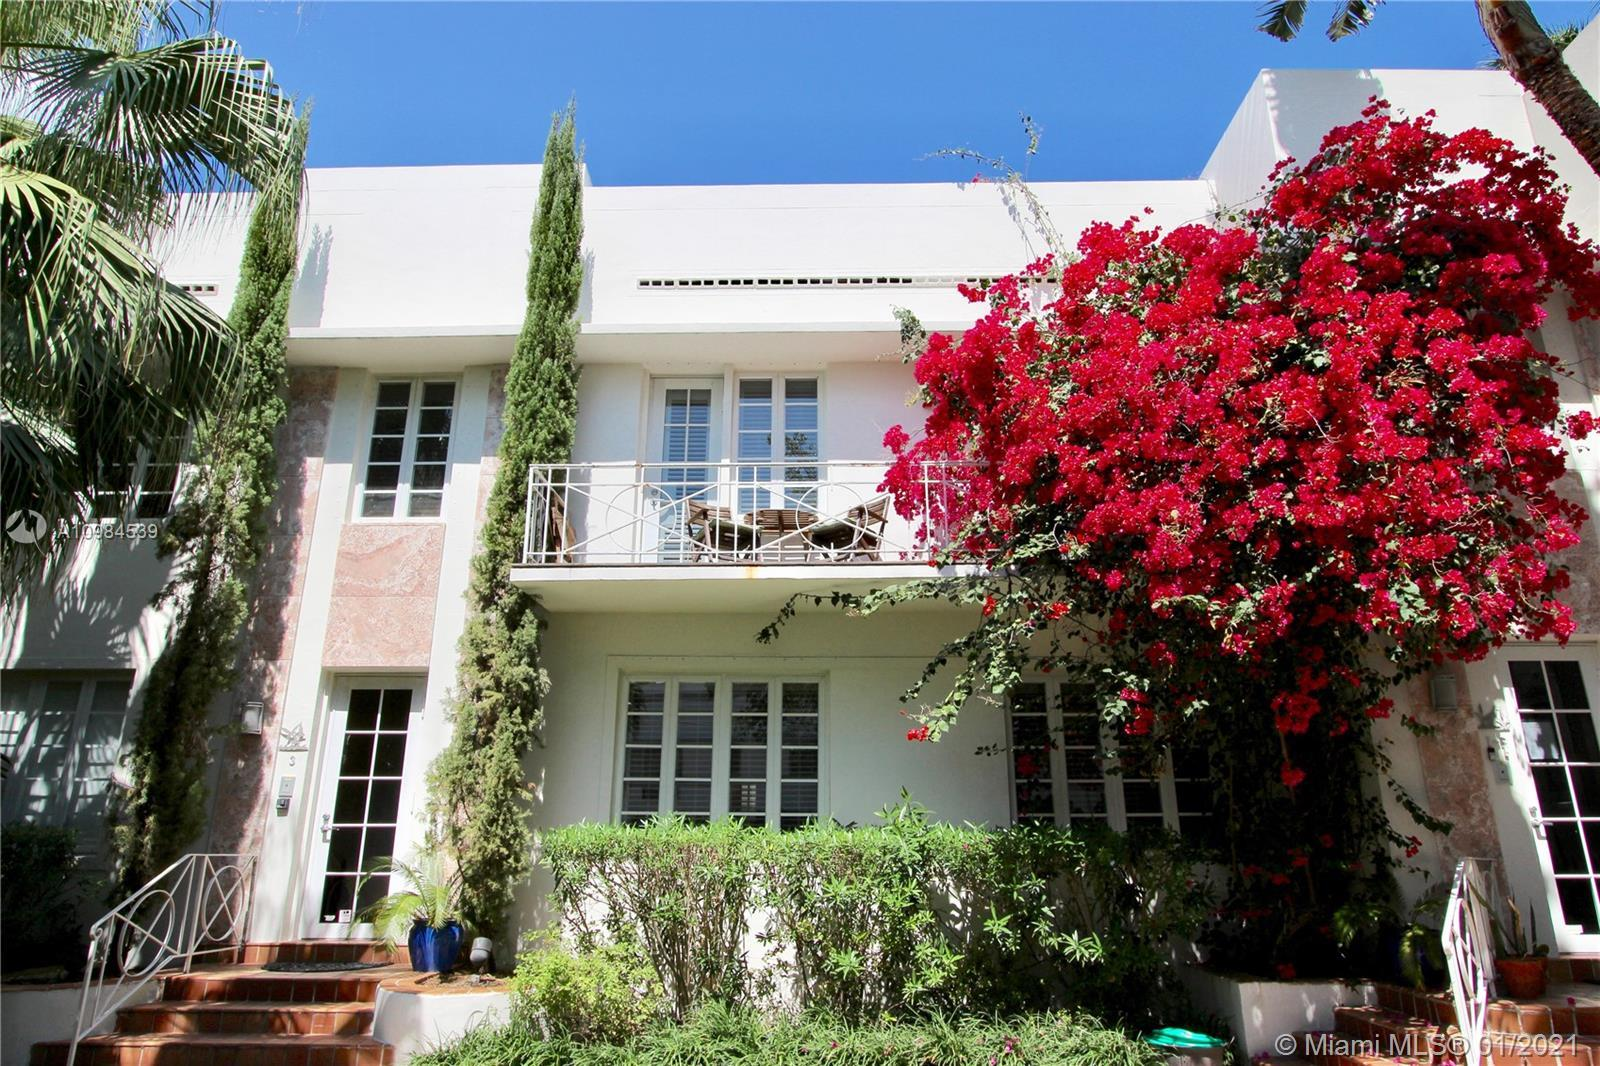 Extremely spacious ONE OF A KIND 3 bedroom TOWNHOUSE in Murray Dixon Art Deco Bldg. Direct entrance